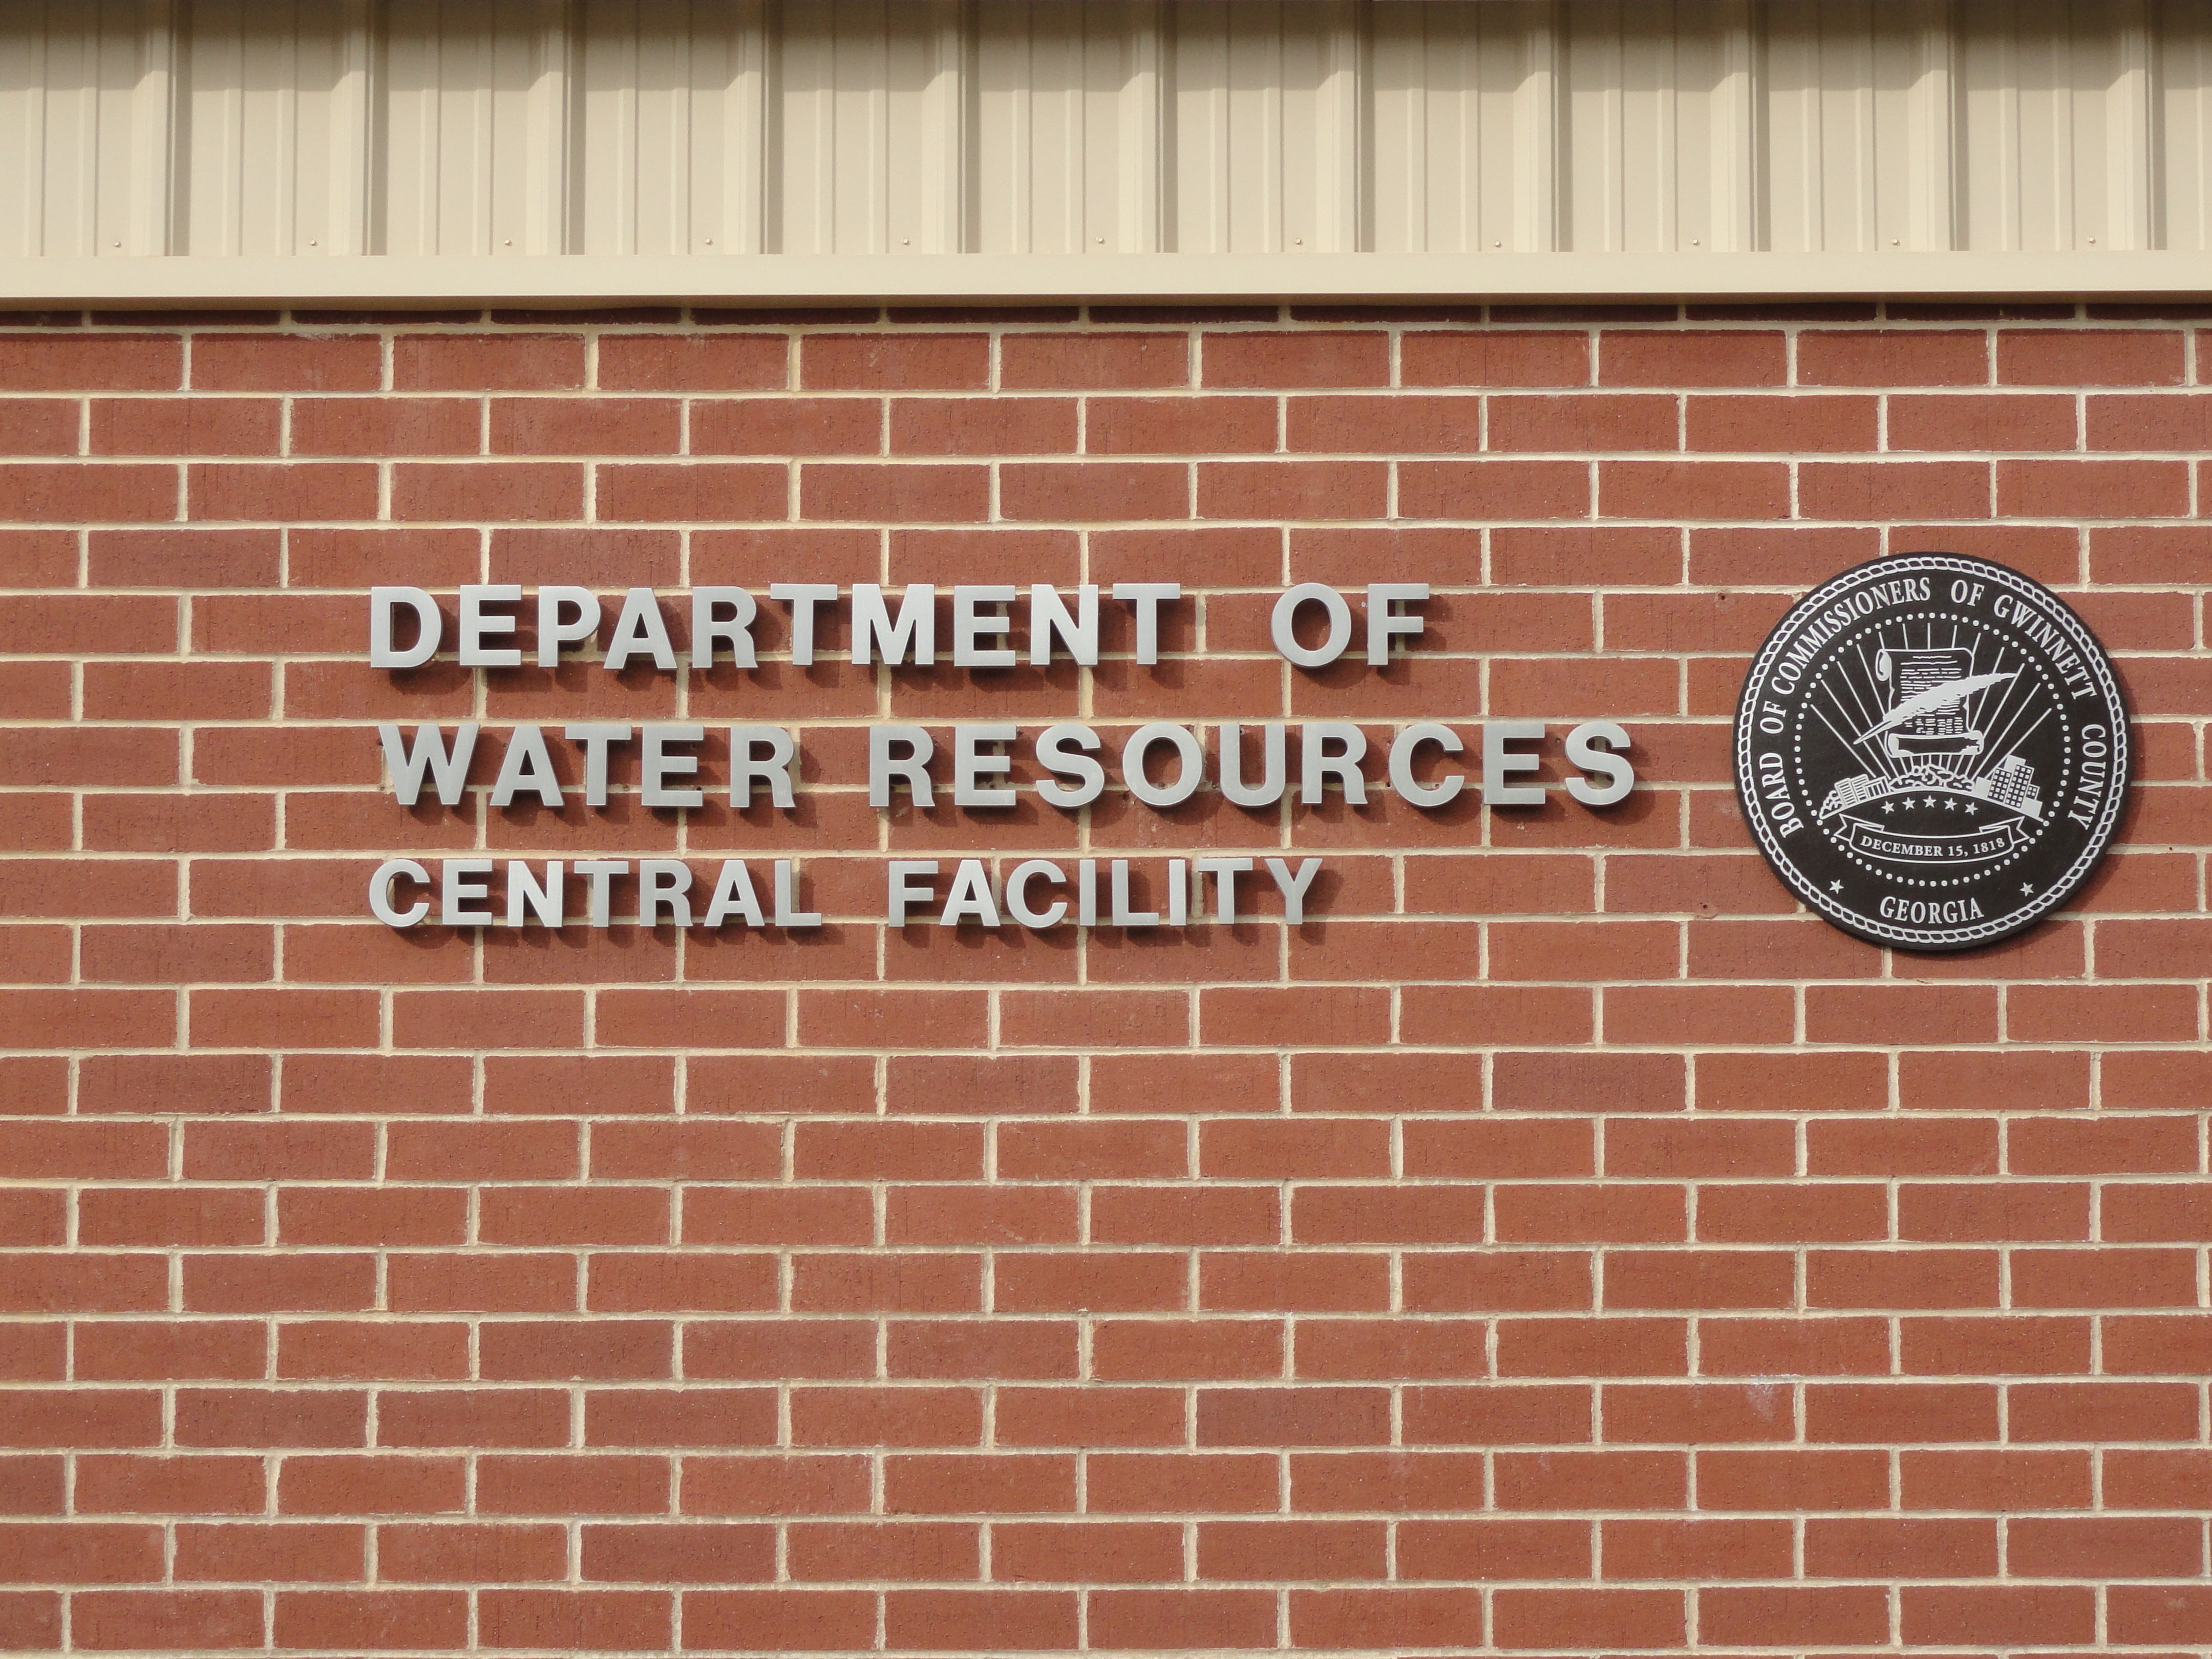 Gwinnett County Septic Tanks Records Now Available Online